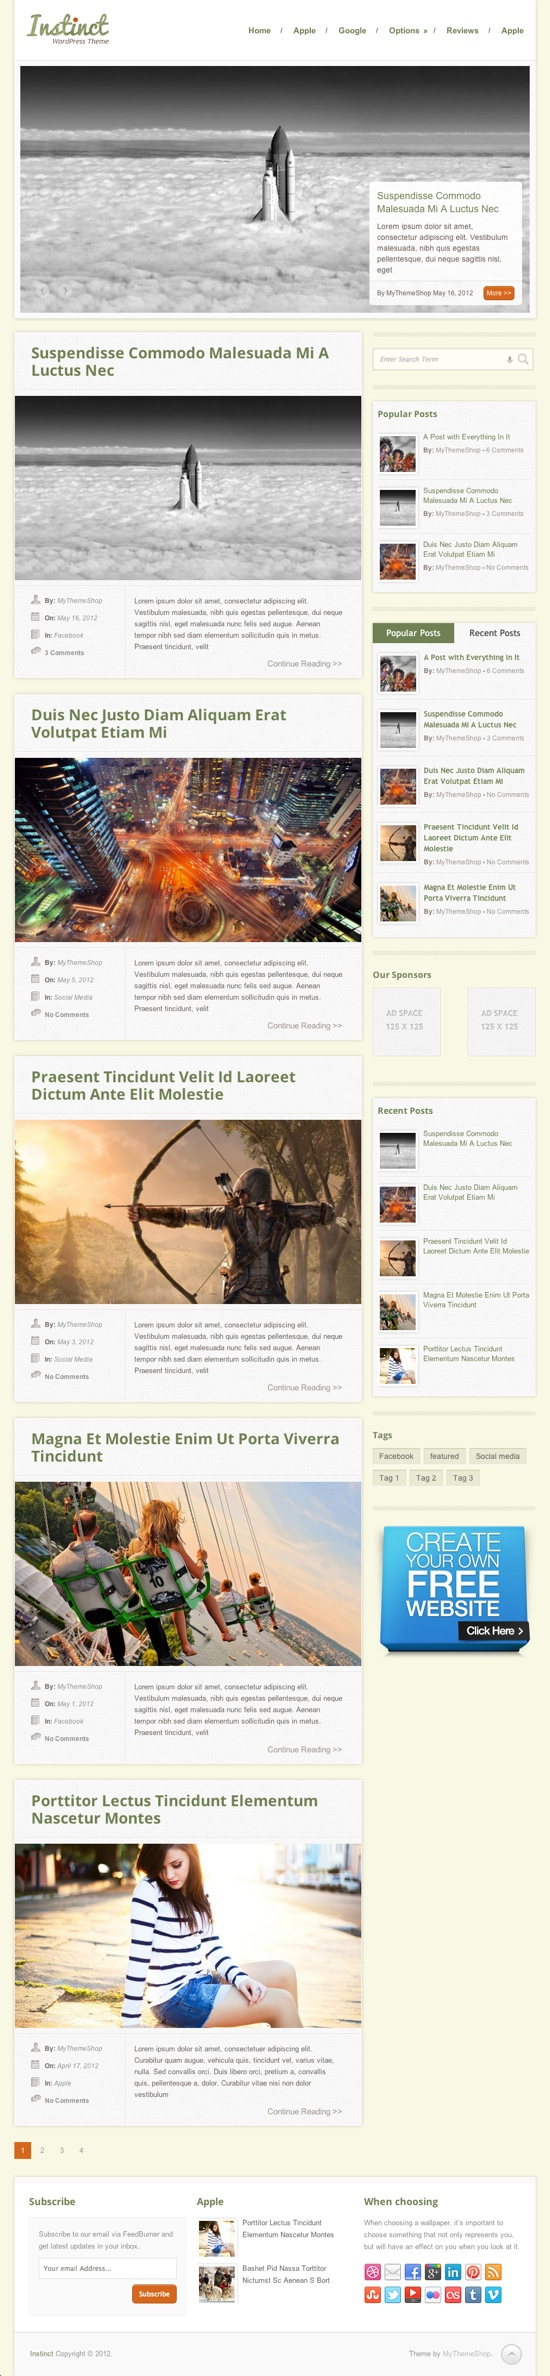 Instinct WordPress Theme